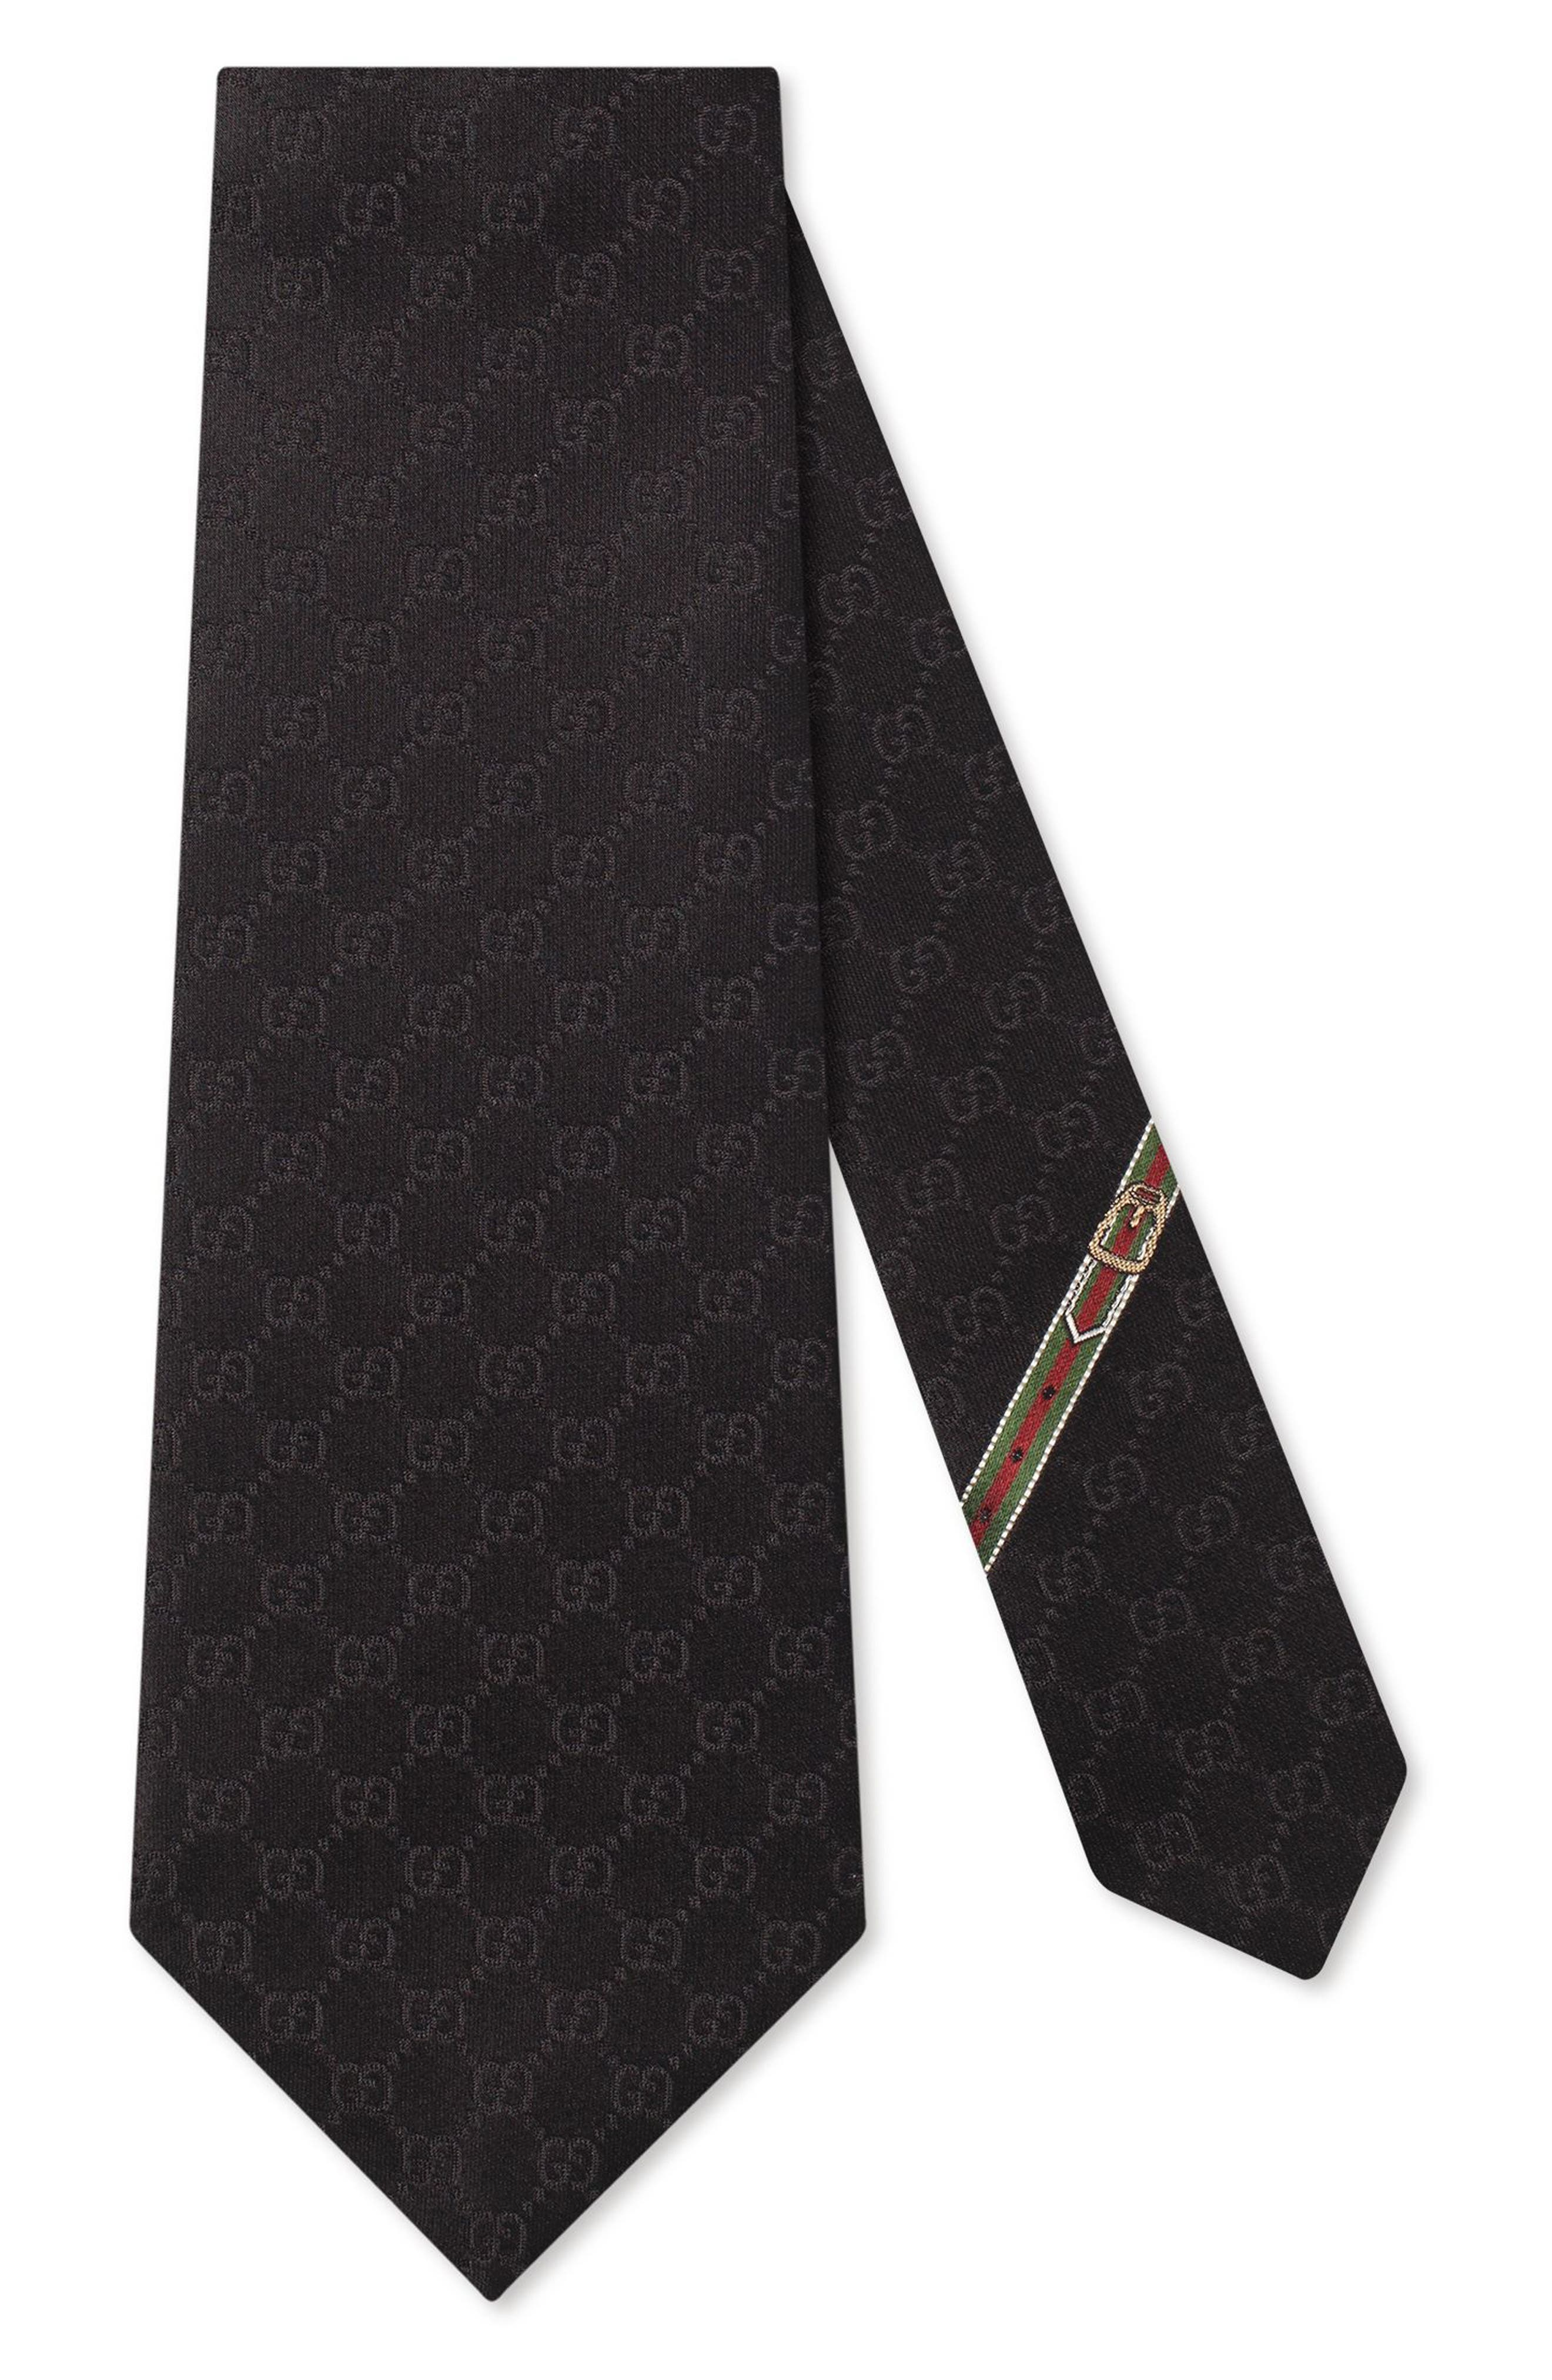 Alternate Image 1 Selected - Gucci Fedra Silk Jacquard Tie